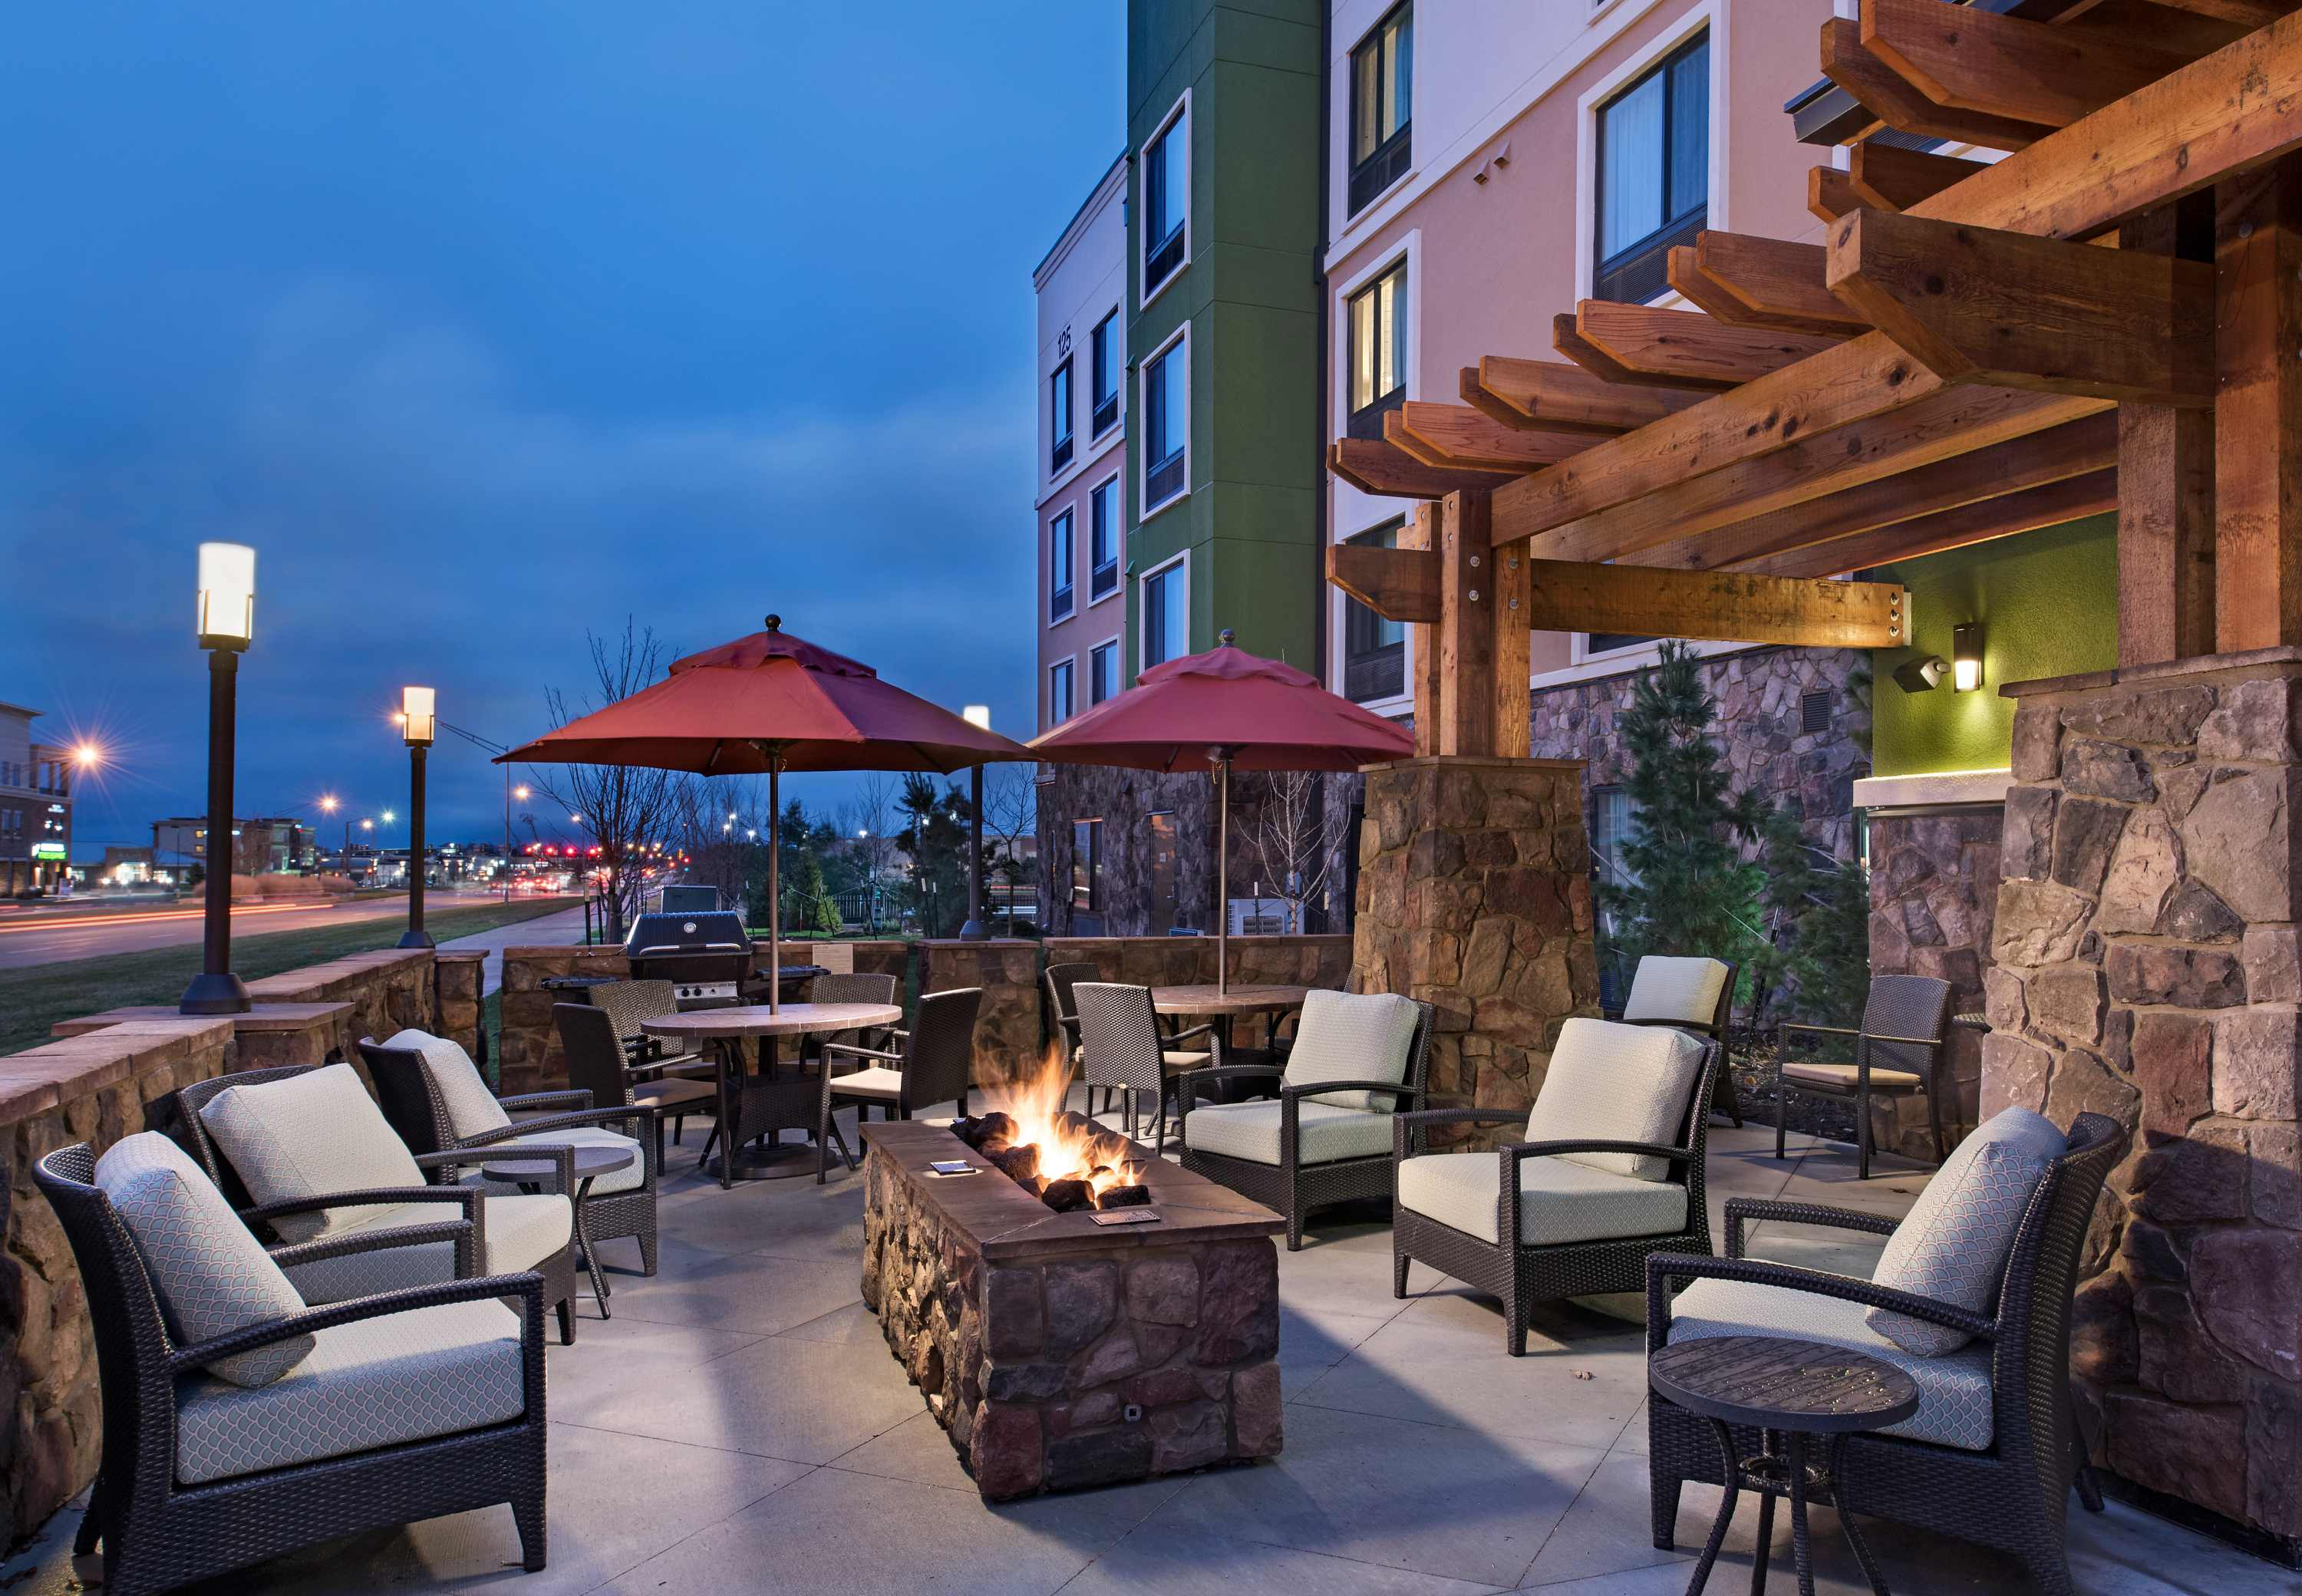 Hotels In South Des Moines Iowa